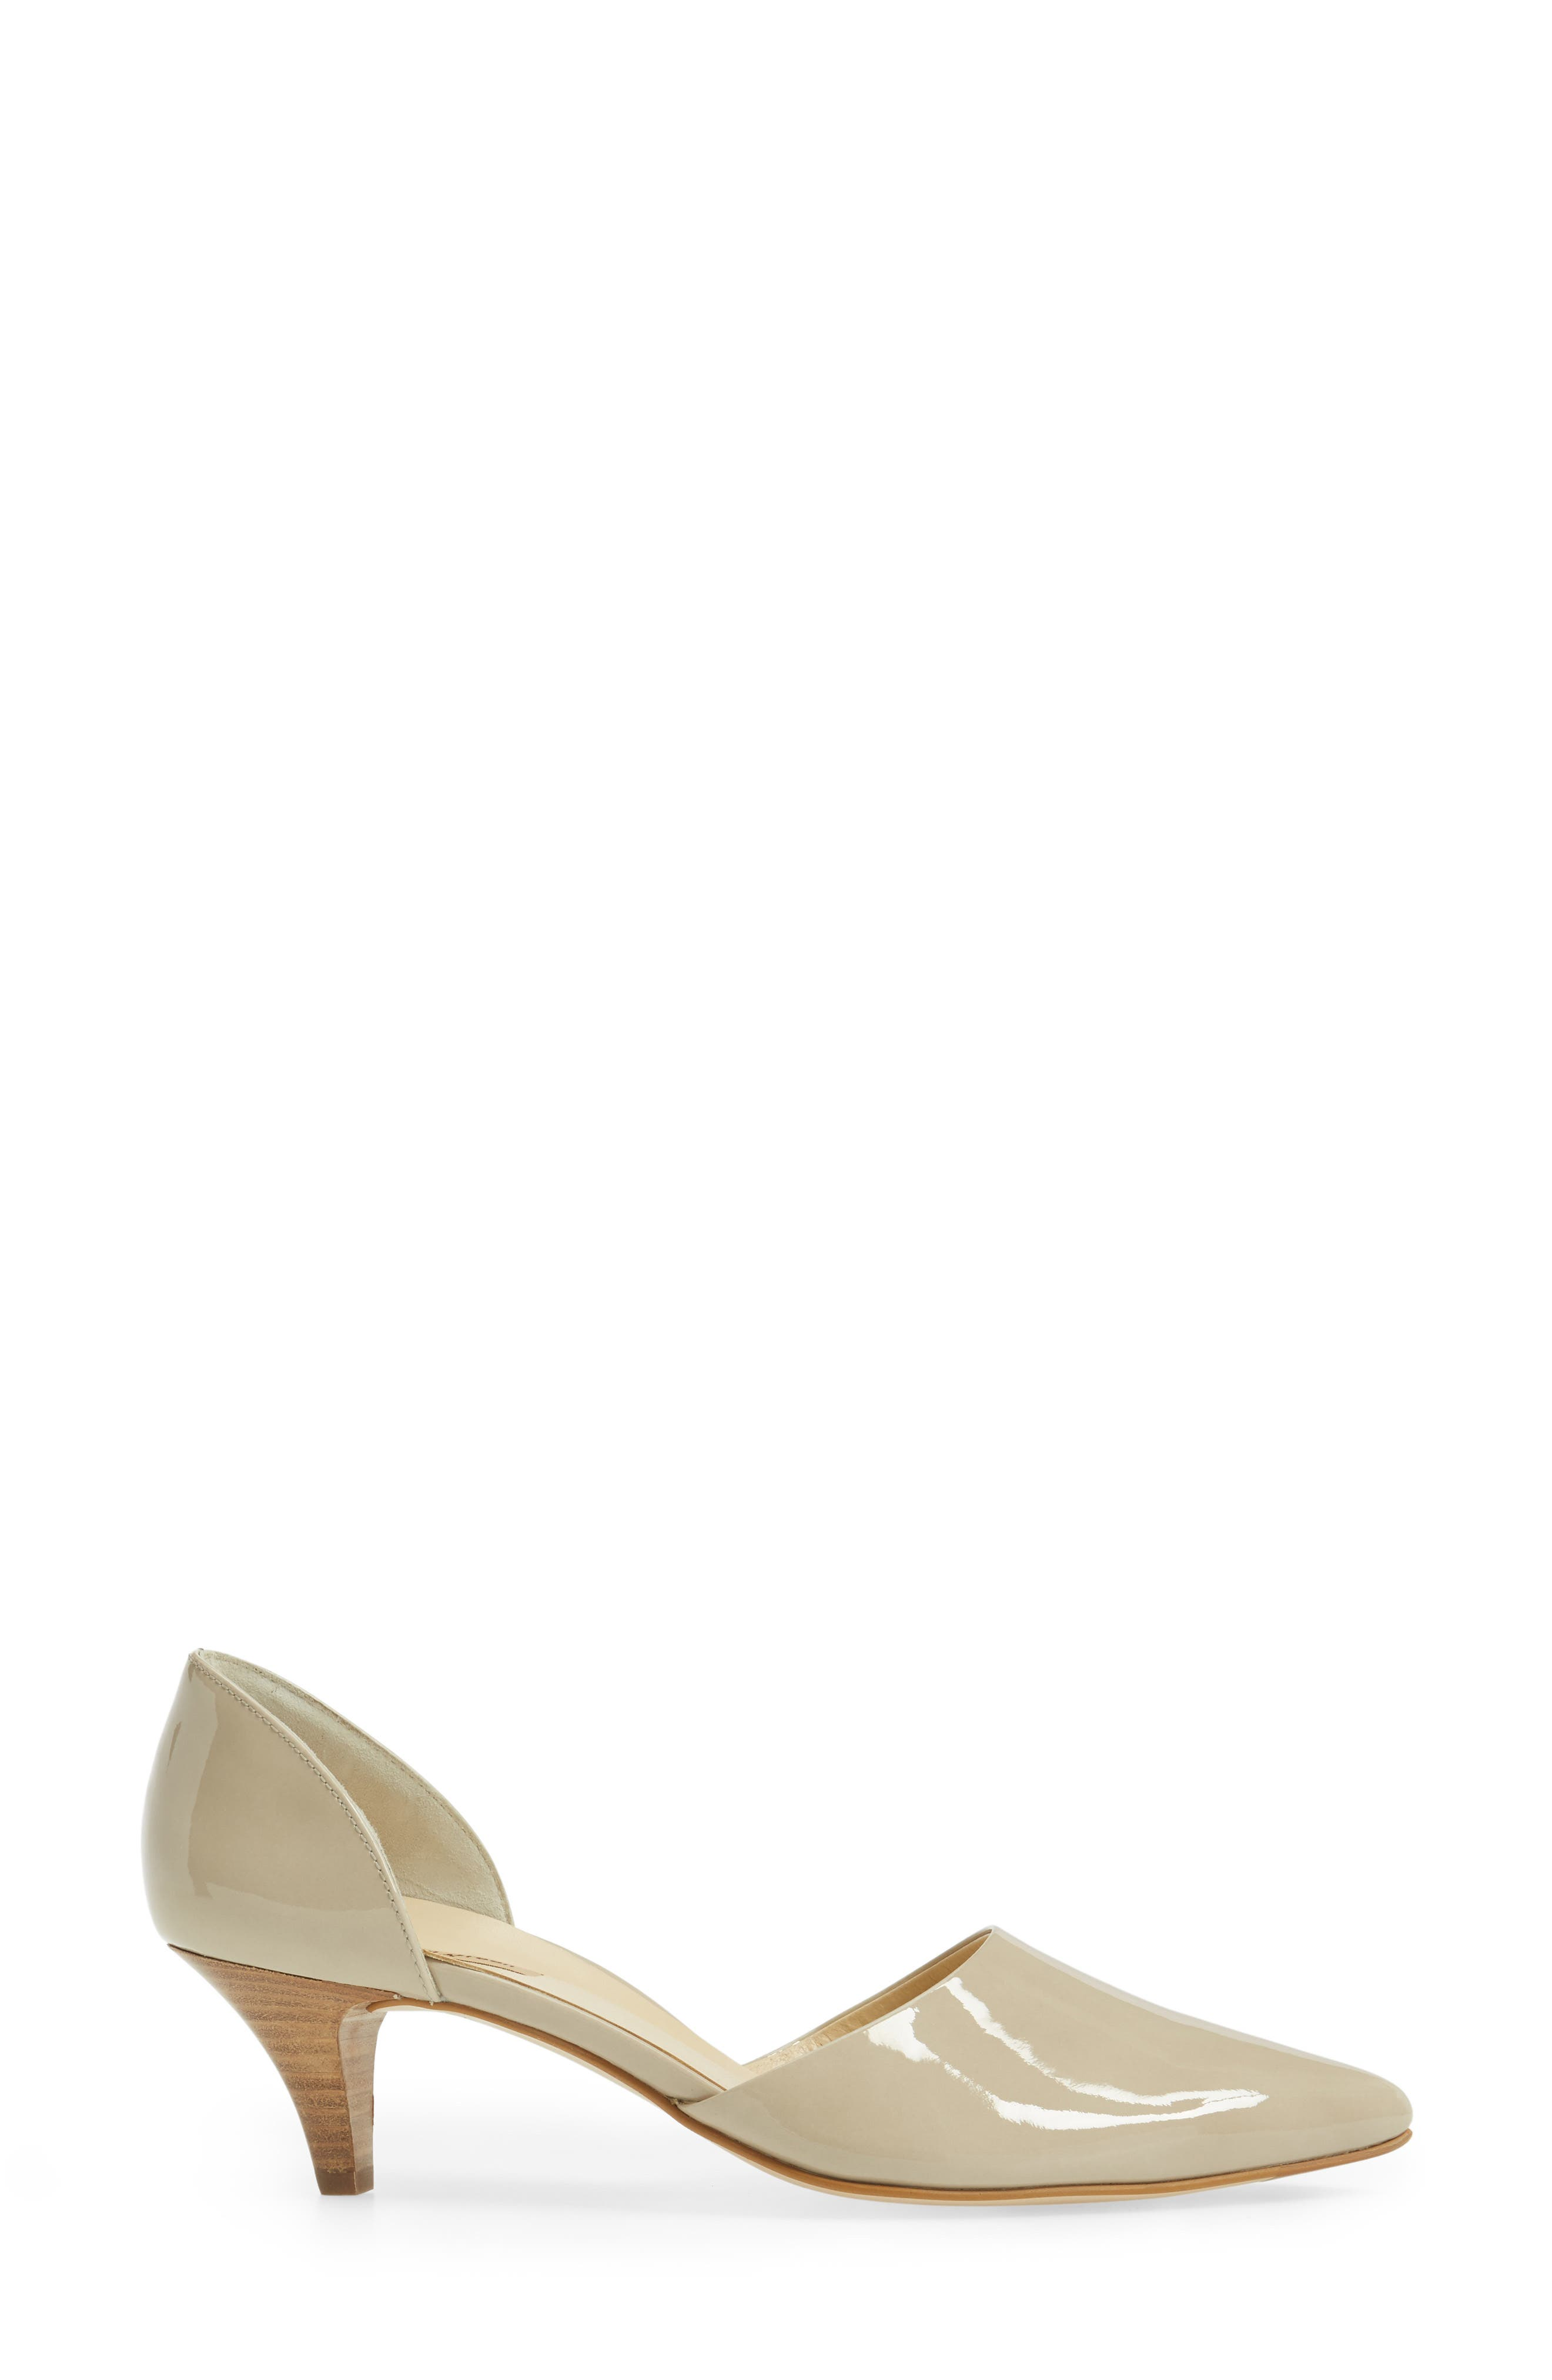 'Julia' d'Orsay Pump,                             Alternate thumbnail 3, color,                             Taupe Patent